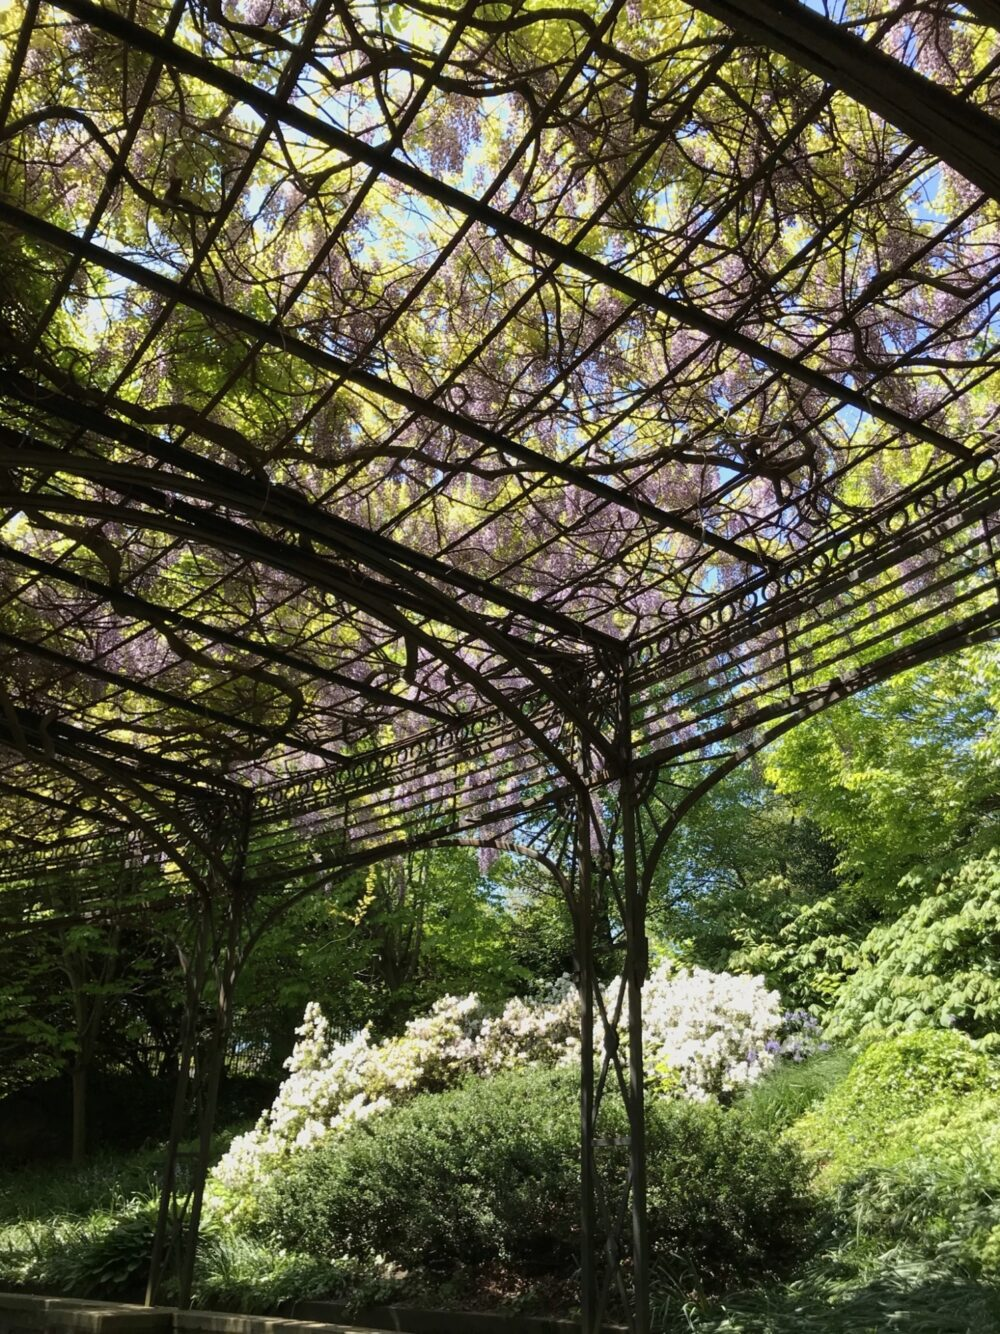 A view looking up through the latticework of the pergola.